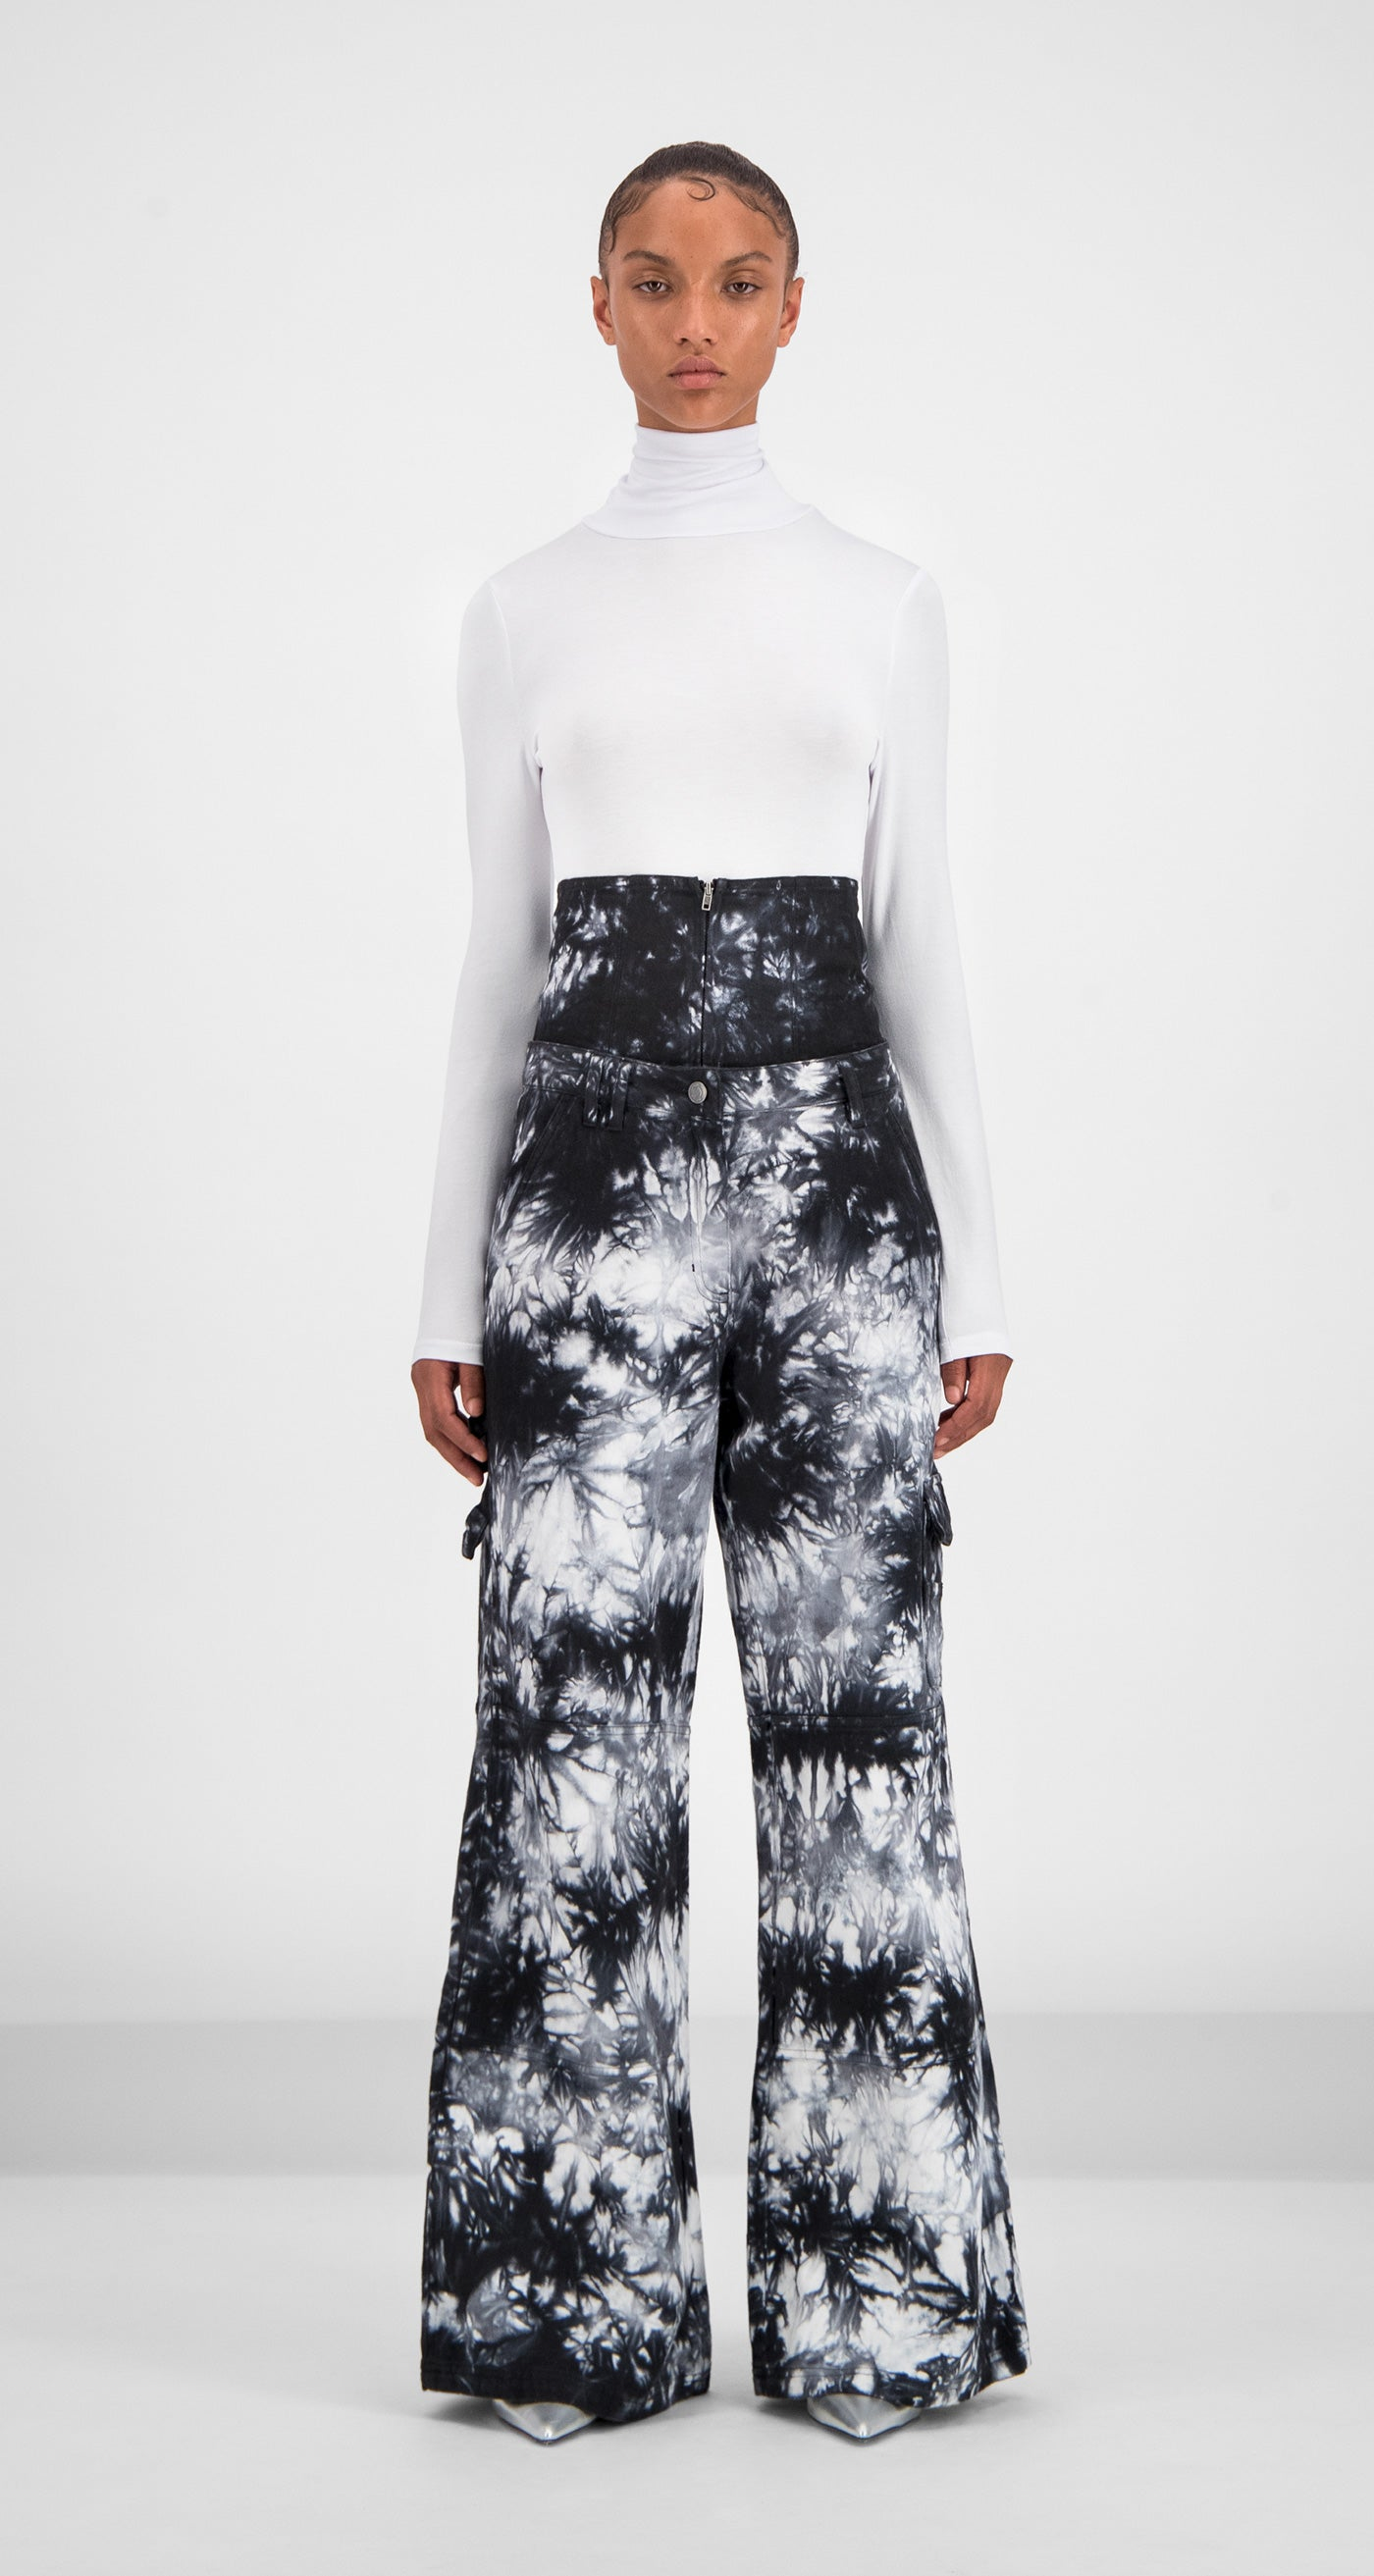 Daily Paper - Black White Tie Dye Gemma Pants Women Front